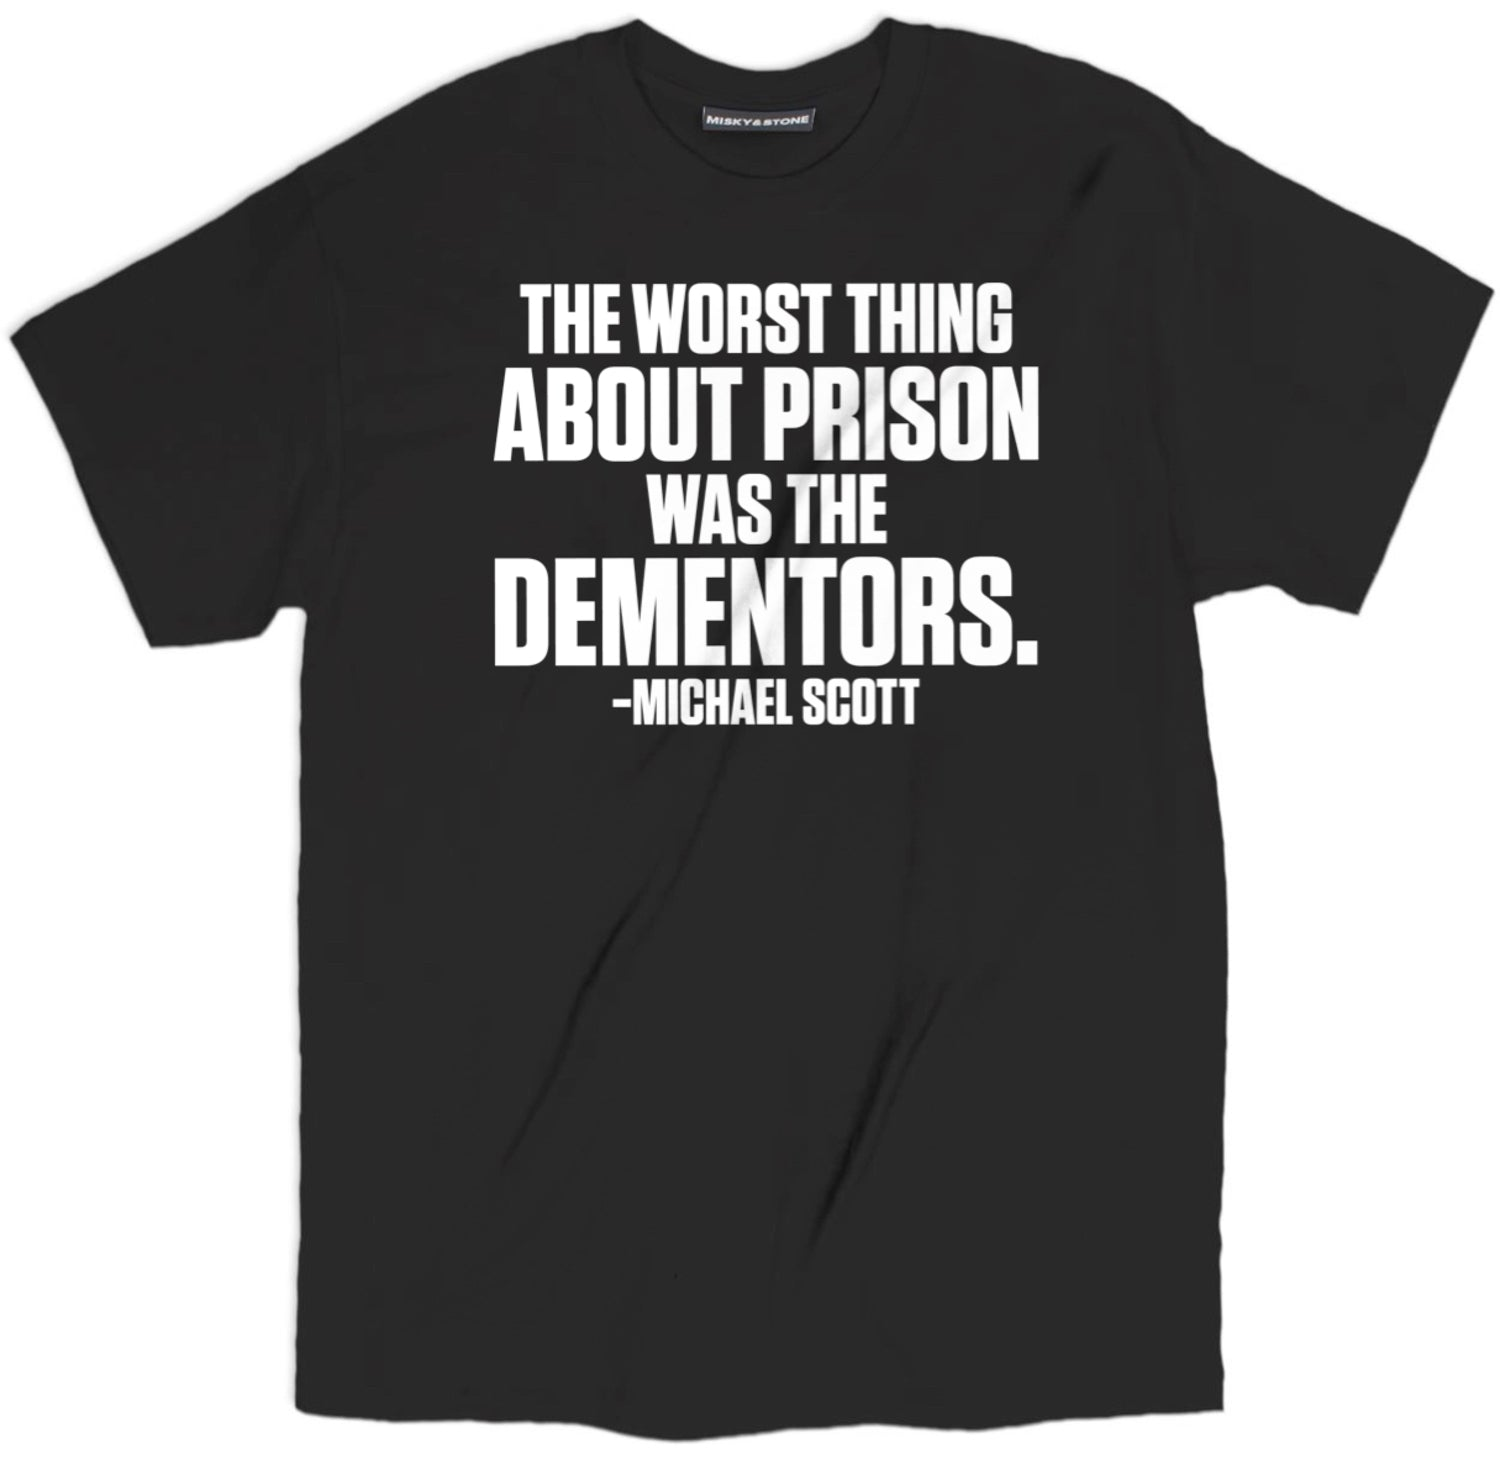 the worst thing about prison was the dementors t shirt, free prison mike shirt, free prison mike shirt, prison mike shirt, prison mike t shirt, the office shirts, the office t shirts, dunder mifflin shirt, dunder mifflin t shirt, michael scott shirt, michael scott t shirt, the office tee shirts, dunder mifflin apparel, dunder mifflin merch, the office tv show merchandise